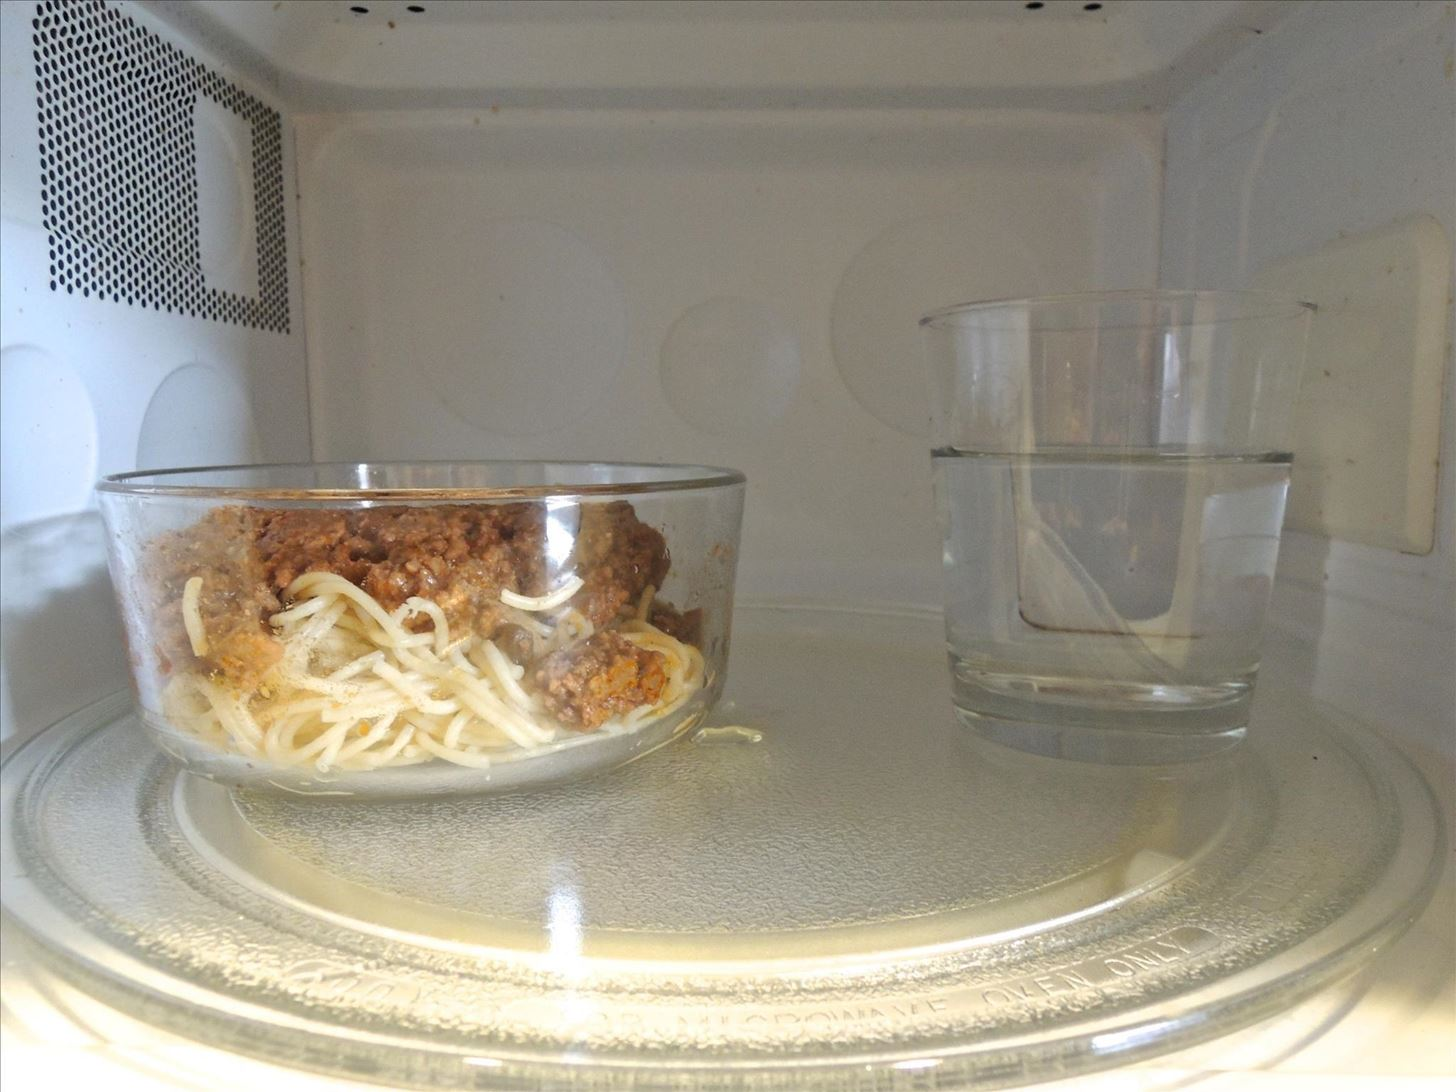 10 Tricks You Need to Use for Better-Tasting Food from Your Microwave